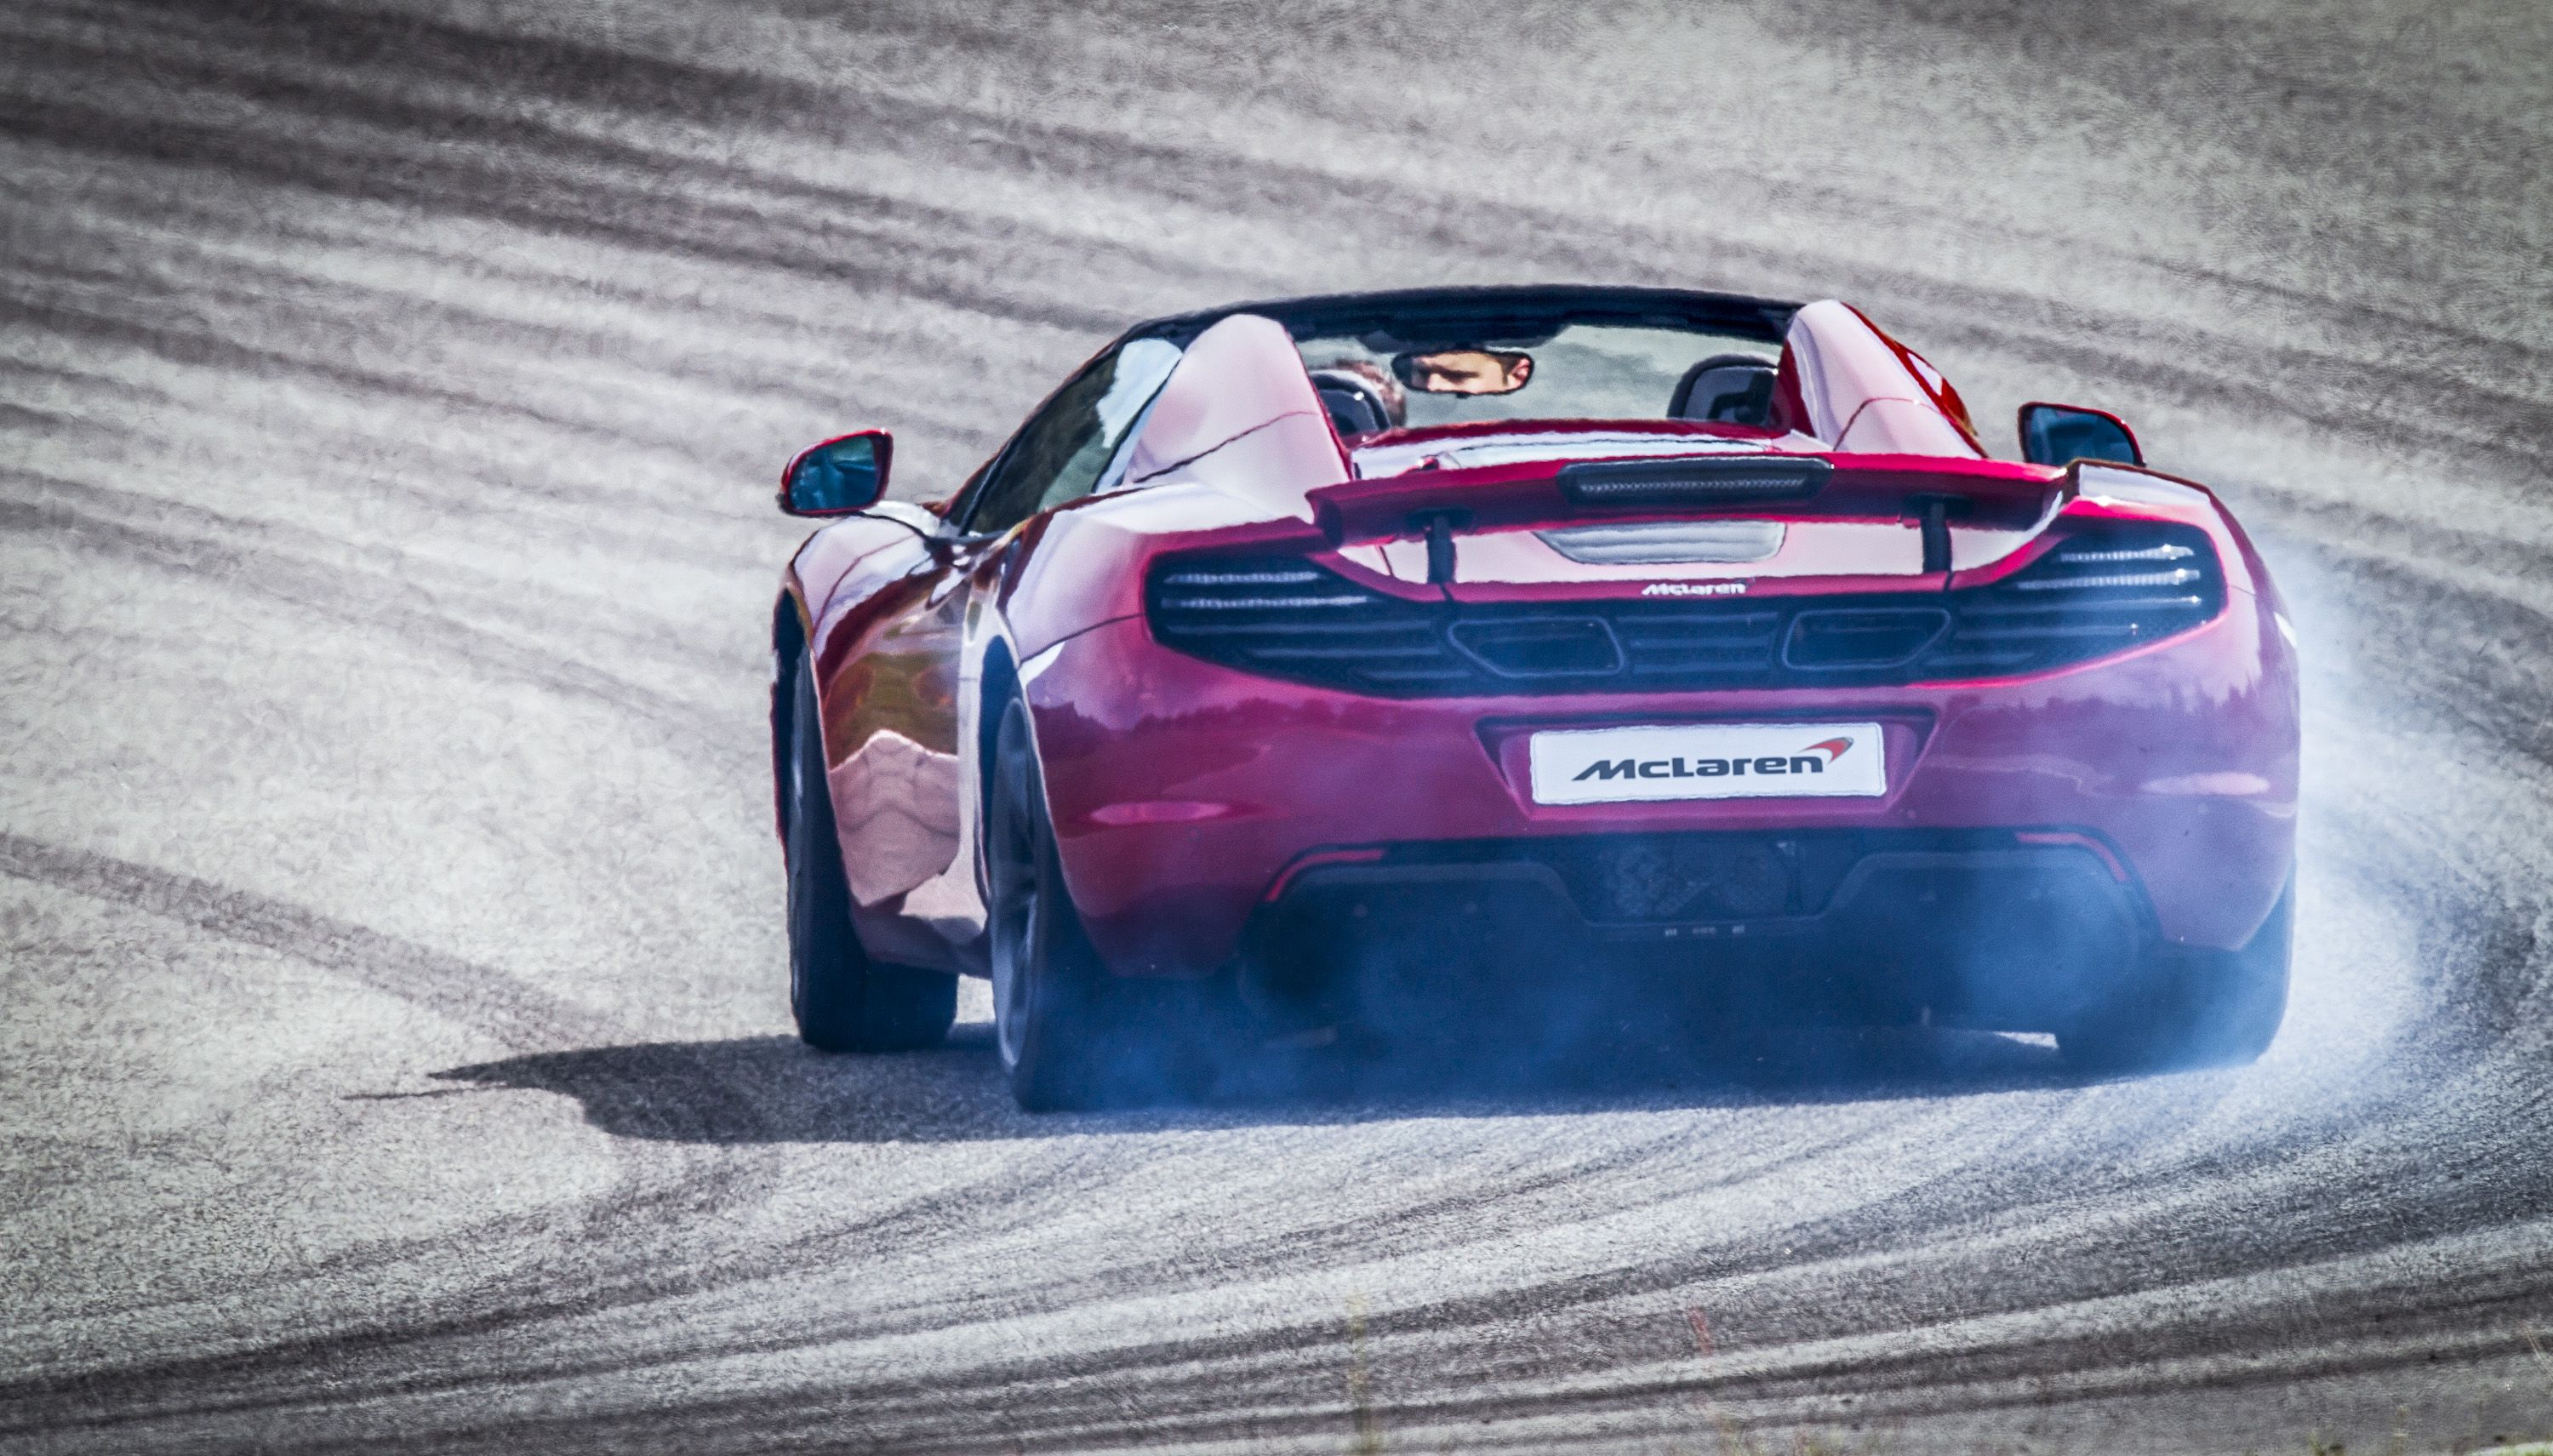 McLaren MP4-12C Spider Rear Drifting